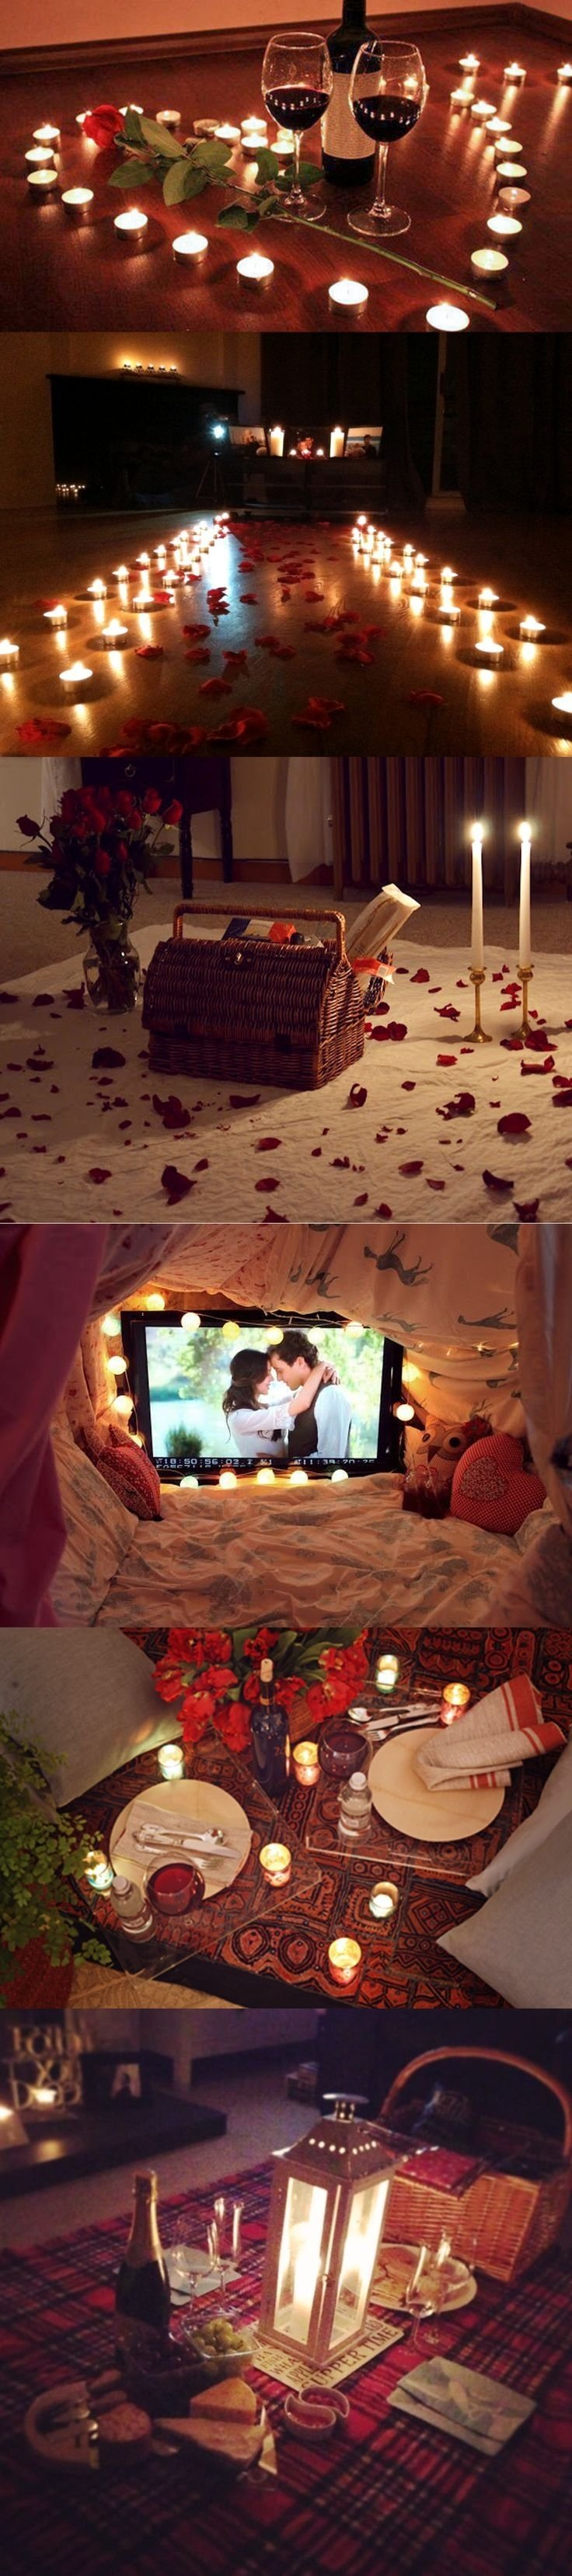 10 Awesome Romantic Date Ideas For Her 152 best date ideas images on pinterest my love romantic ideas 9 2020